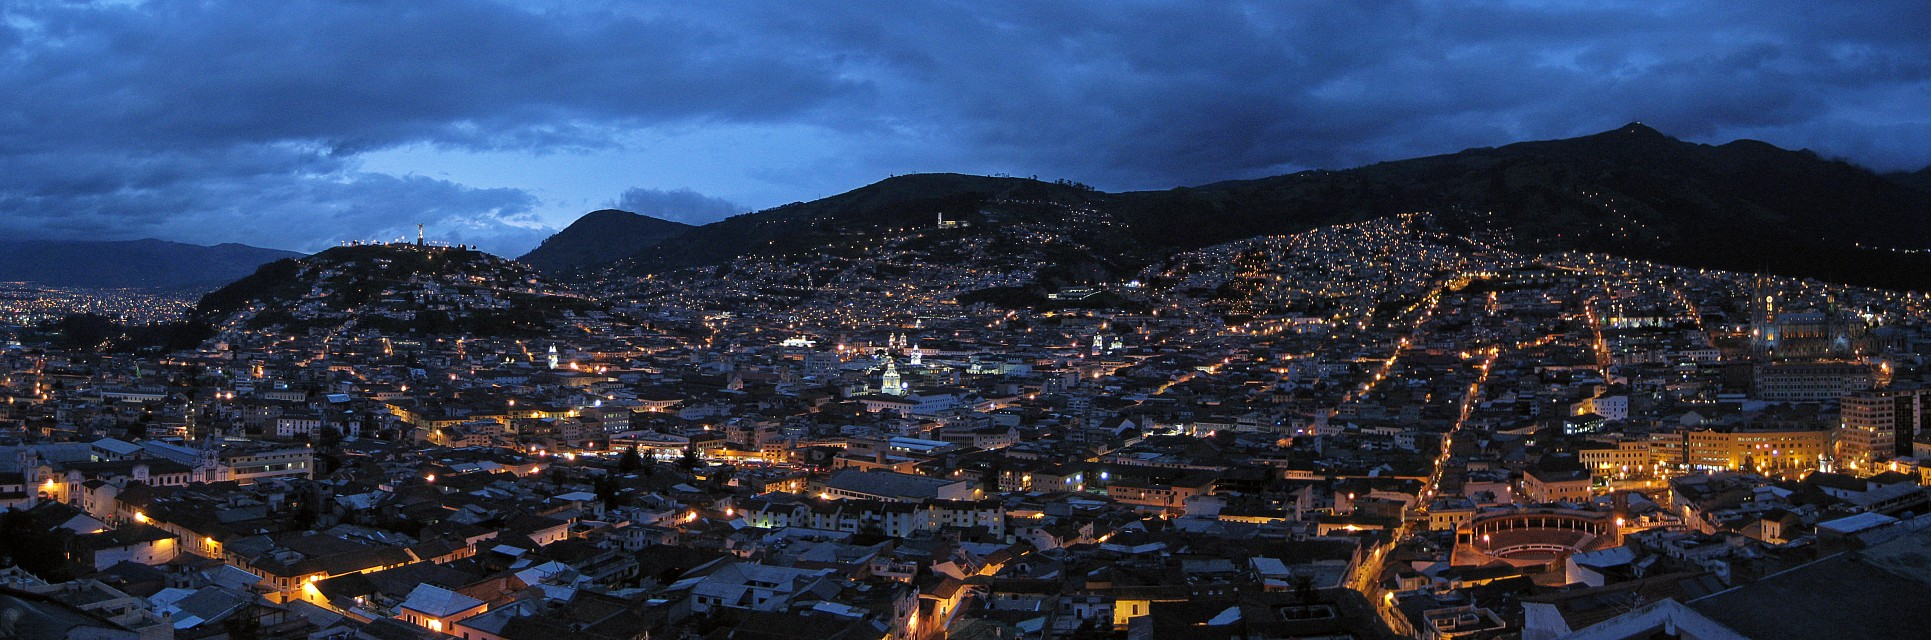 Where the Streets Have No Name - Quito